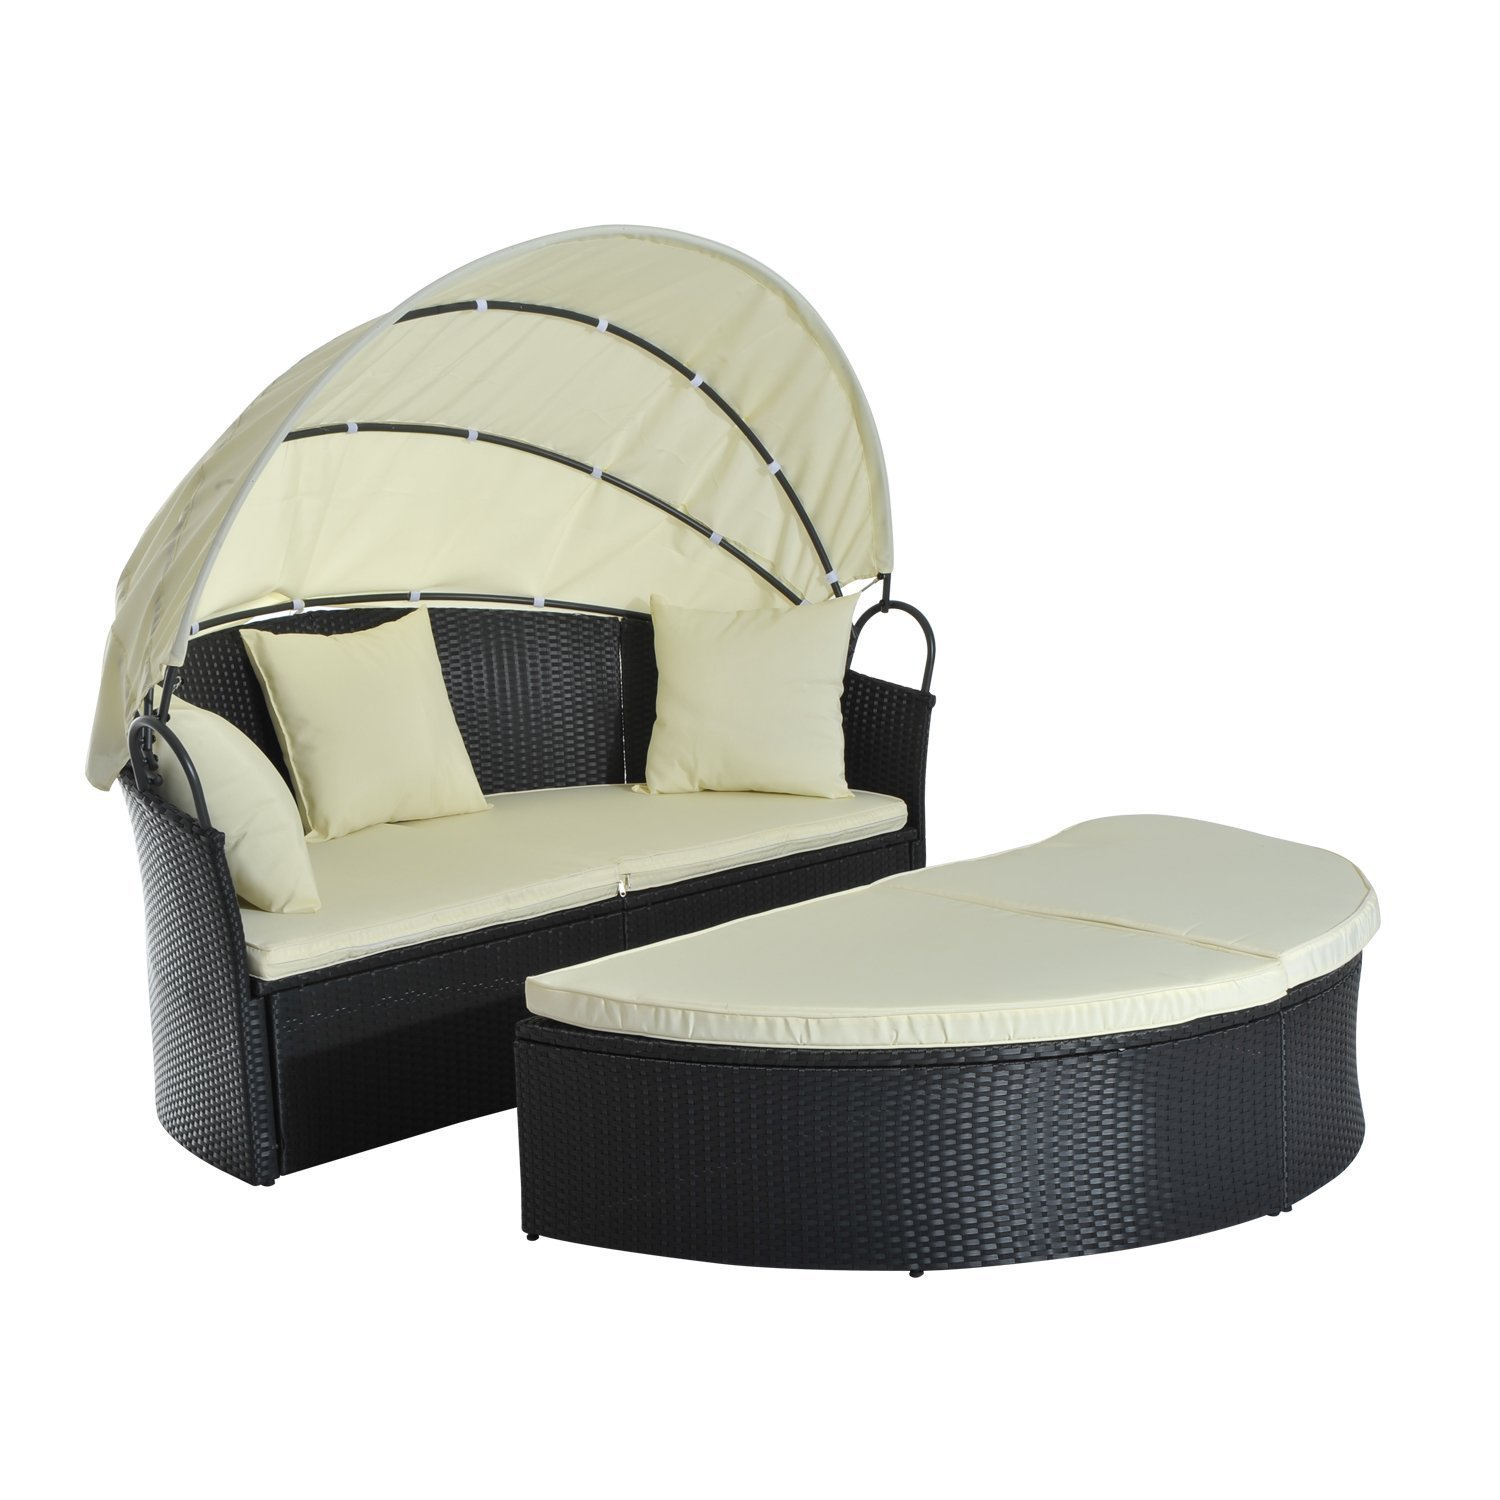 Outsunny Set Garden Lounger Shell Sundress With Sunshade Tent PE Rattan